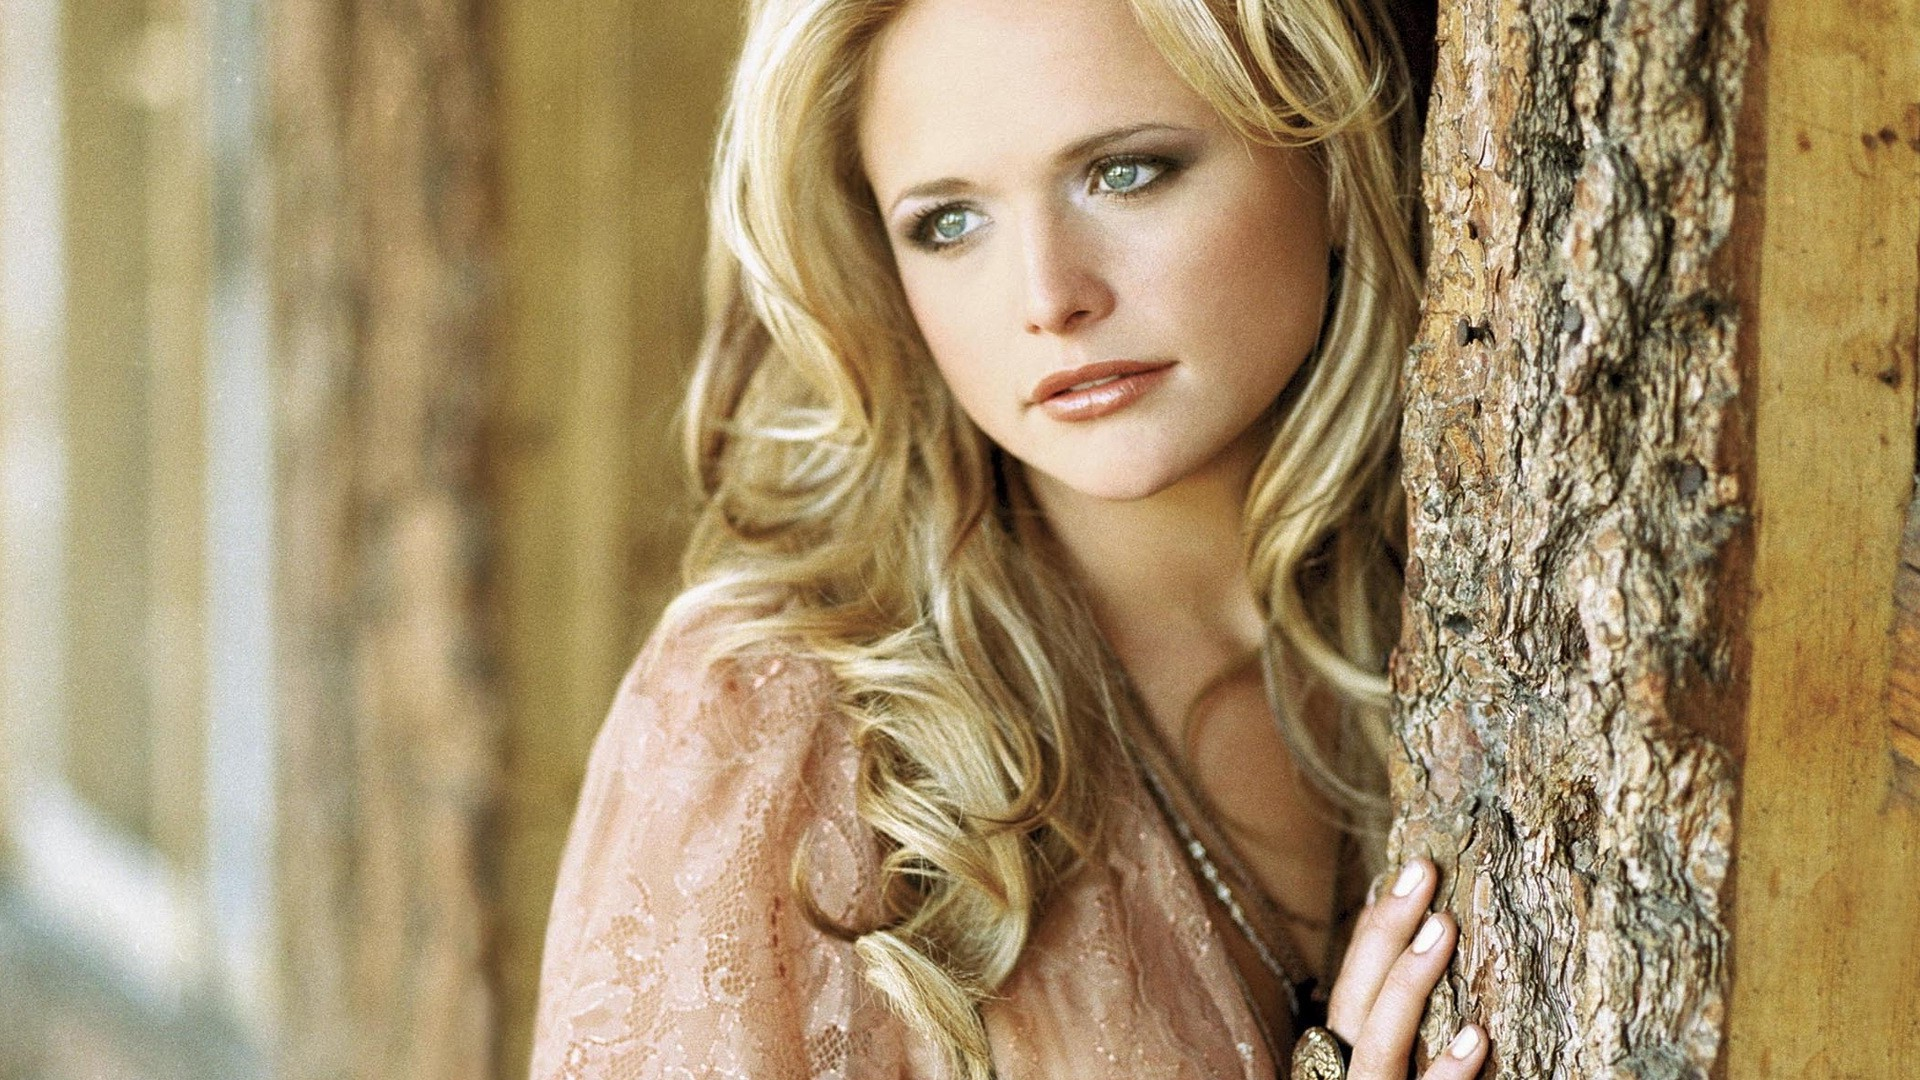 miranda lambert Listen to music by miranda lambert for free on vevo, including official music videos, top songs, new releases, and live performances.